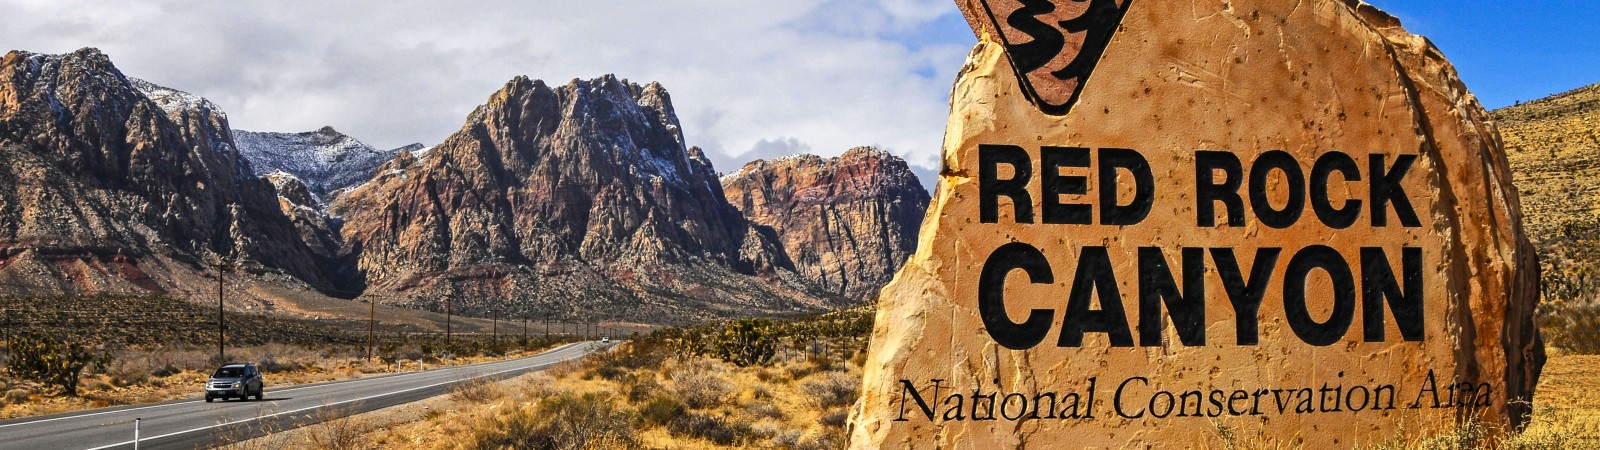 Red Rock Canyon Tours